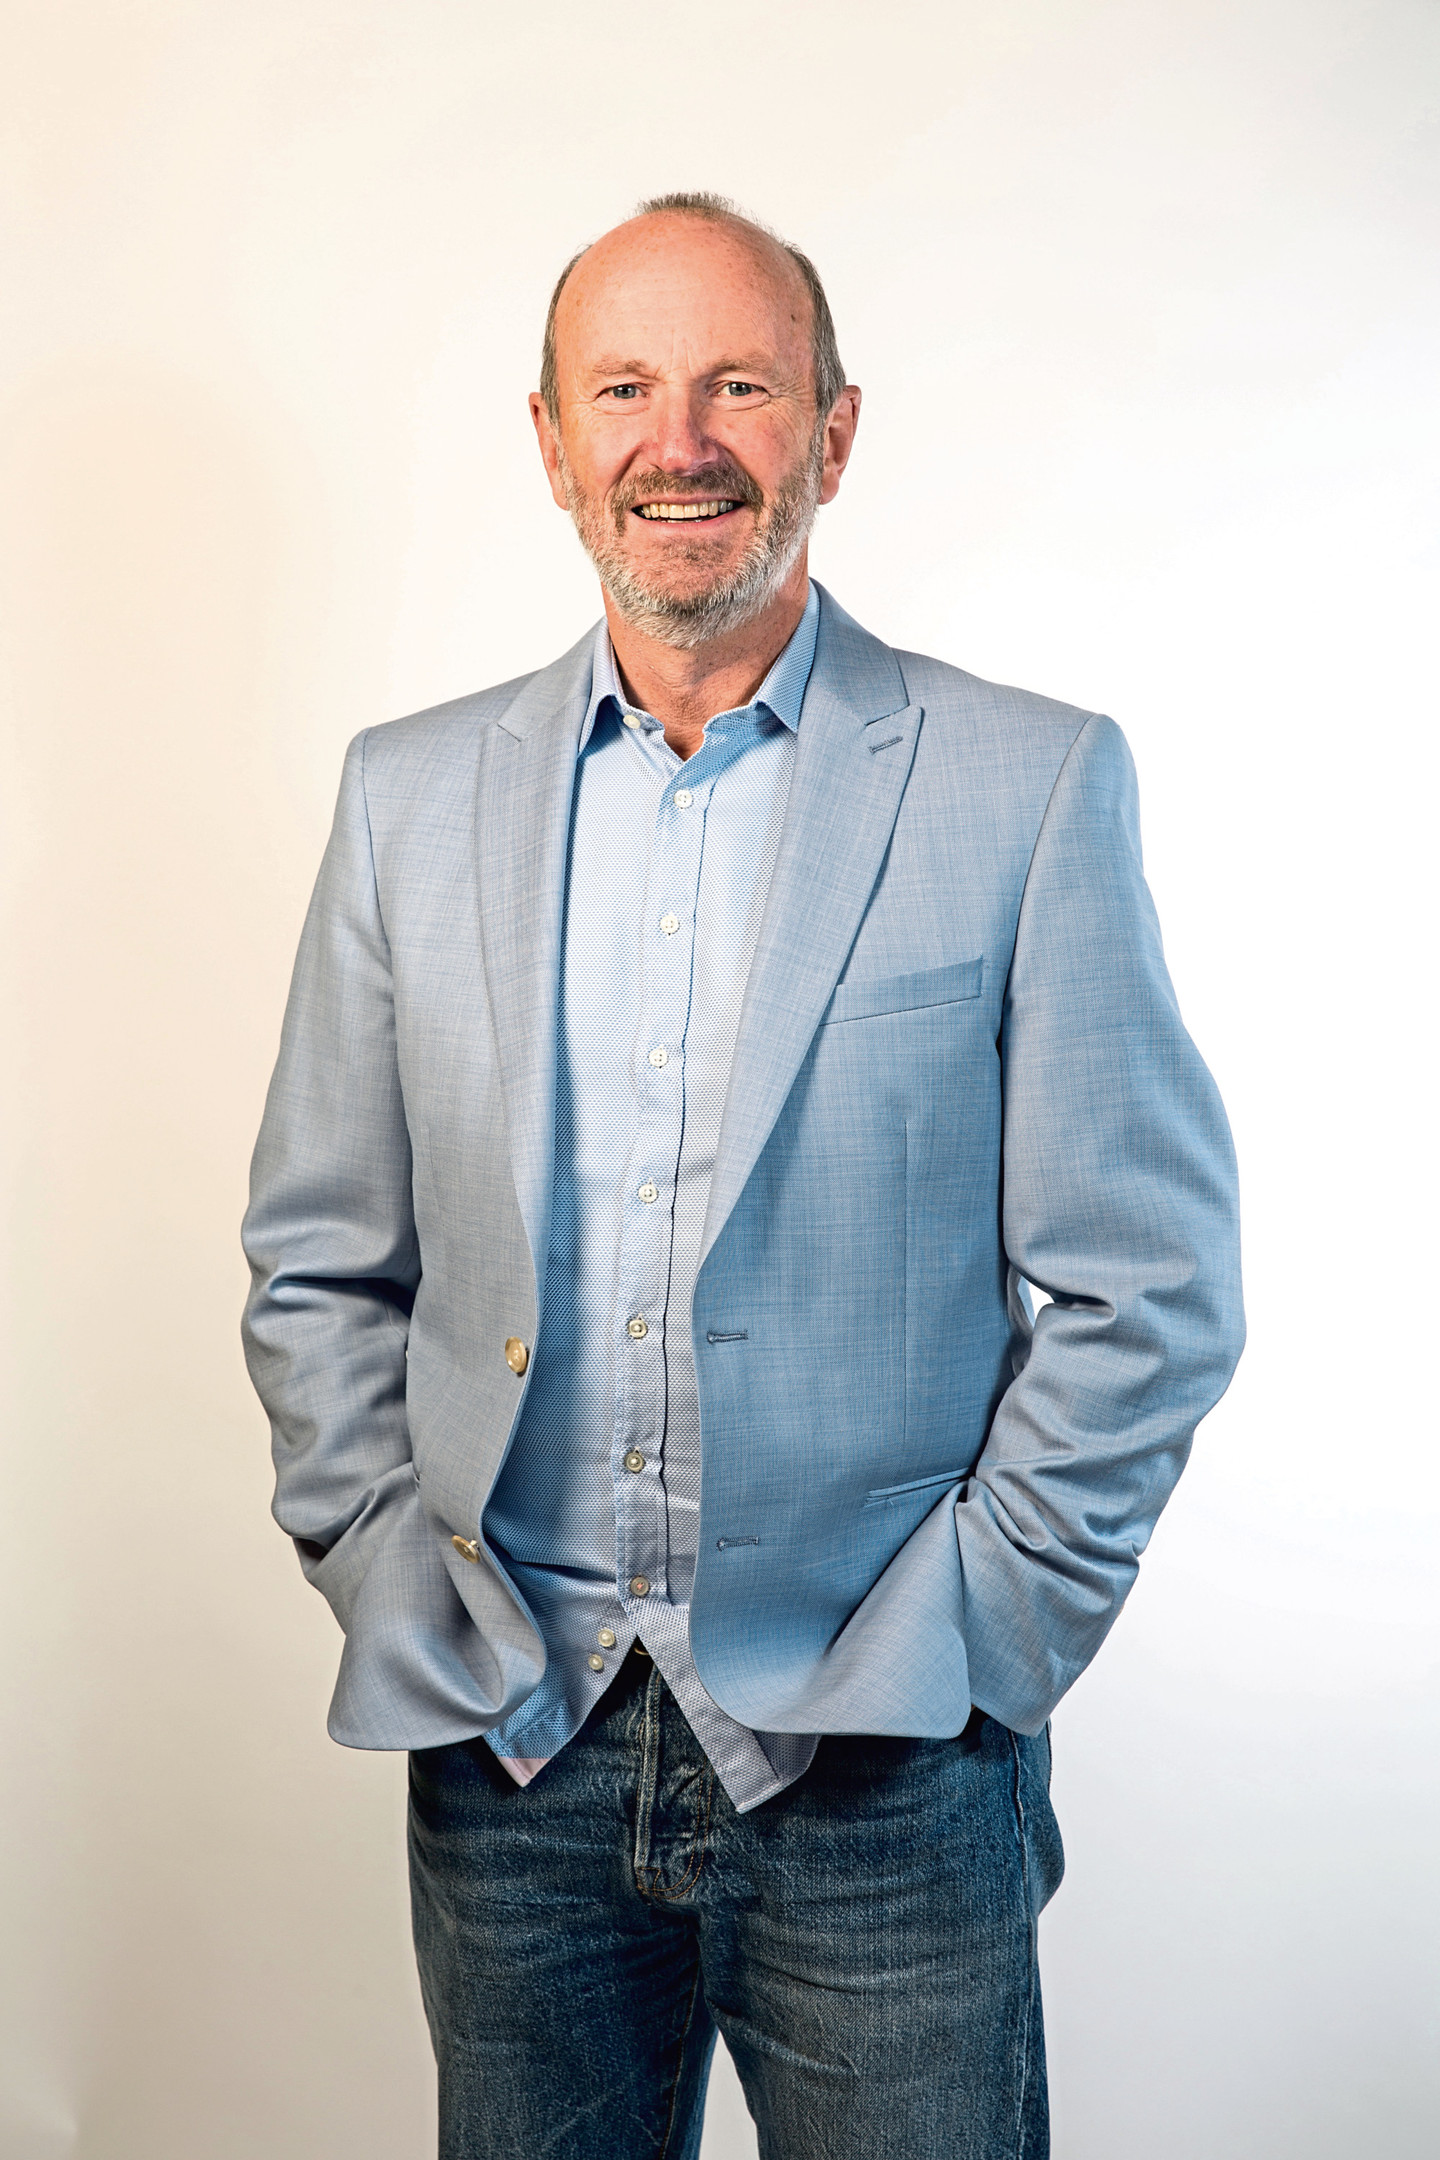 Fred MacAulay has no regrets about giving up his accountancy career